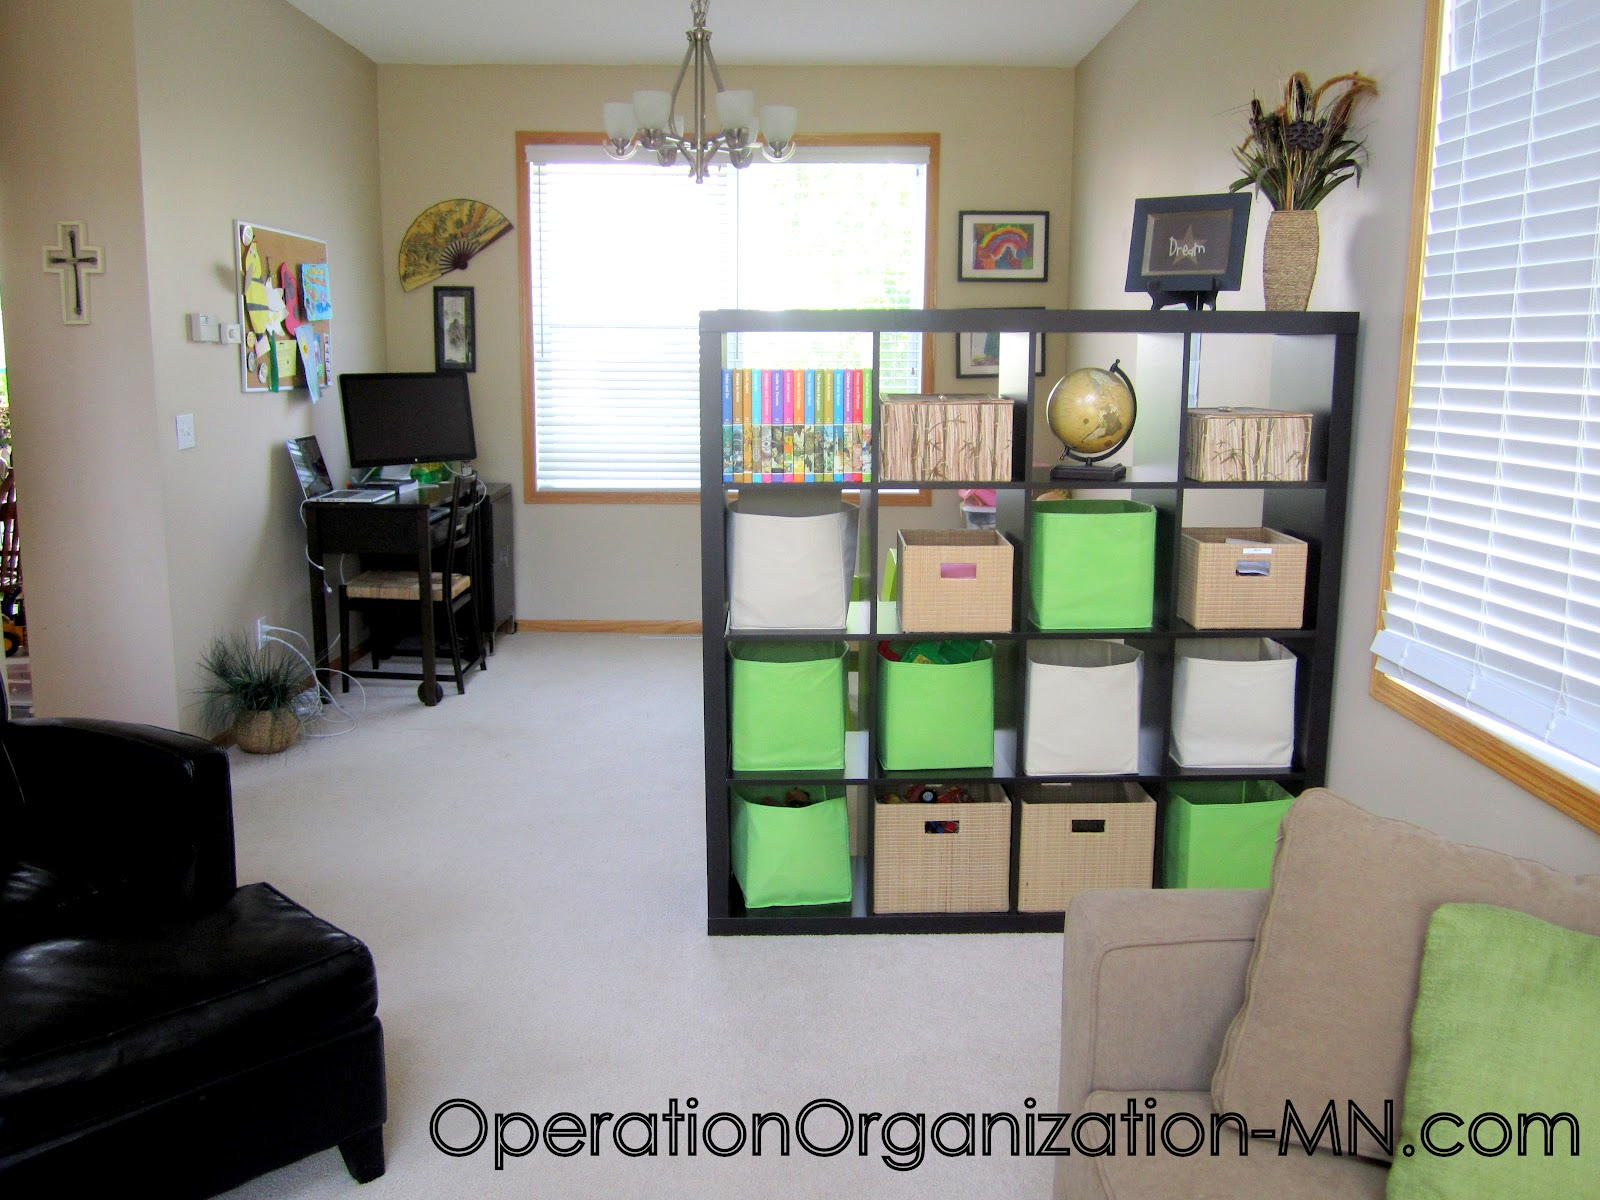 Operation organization professional organizer peachtree for Organize living room ideas